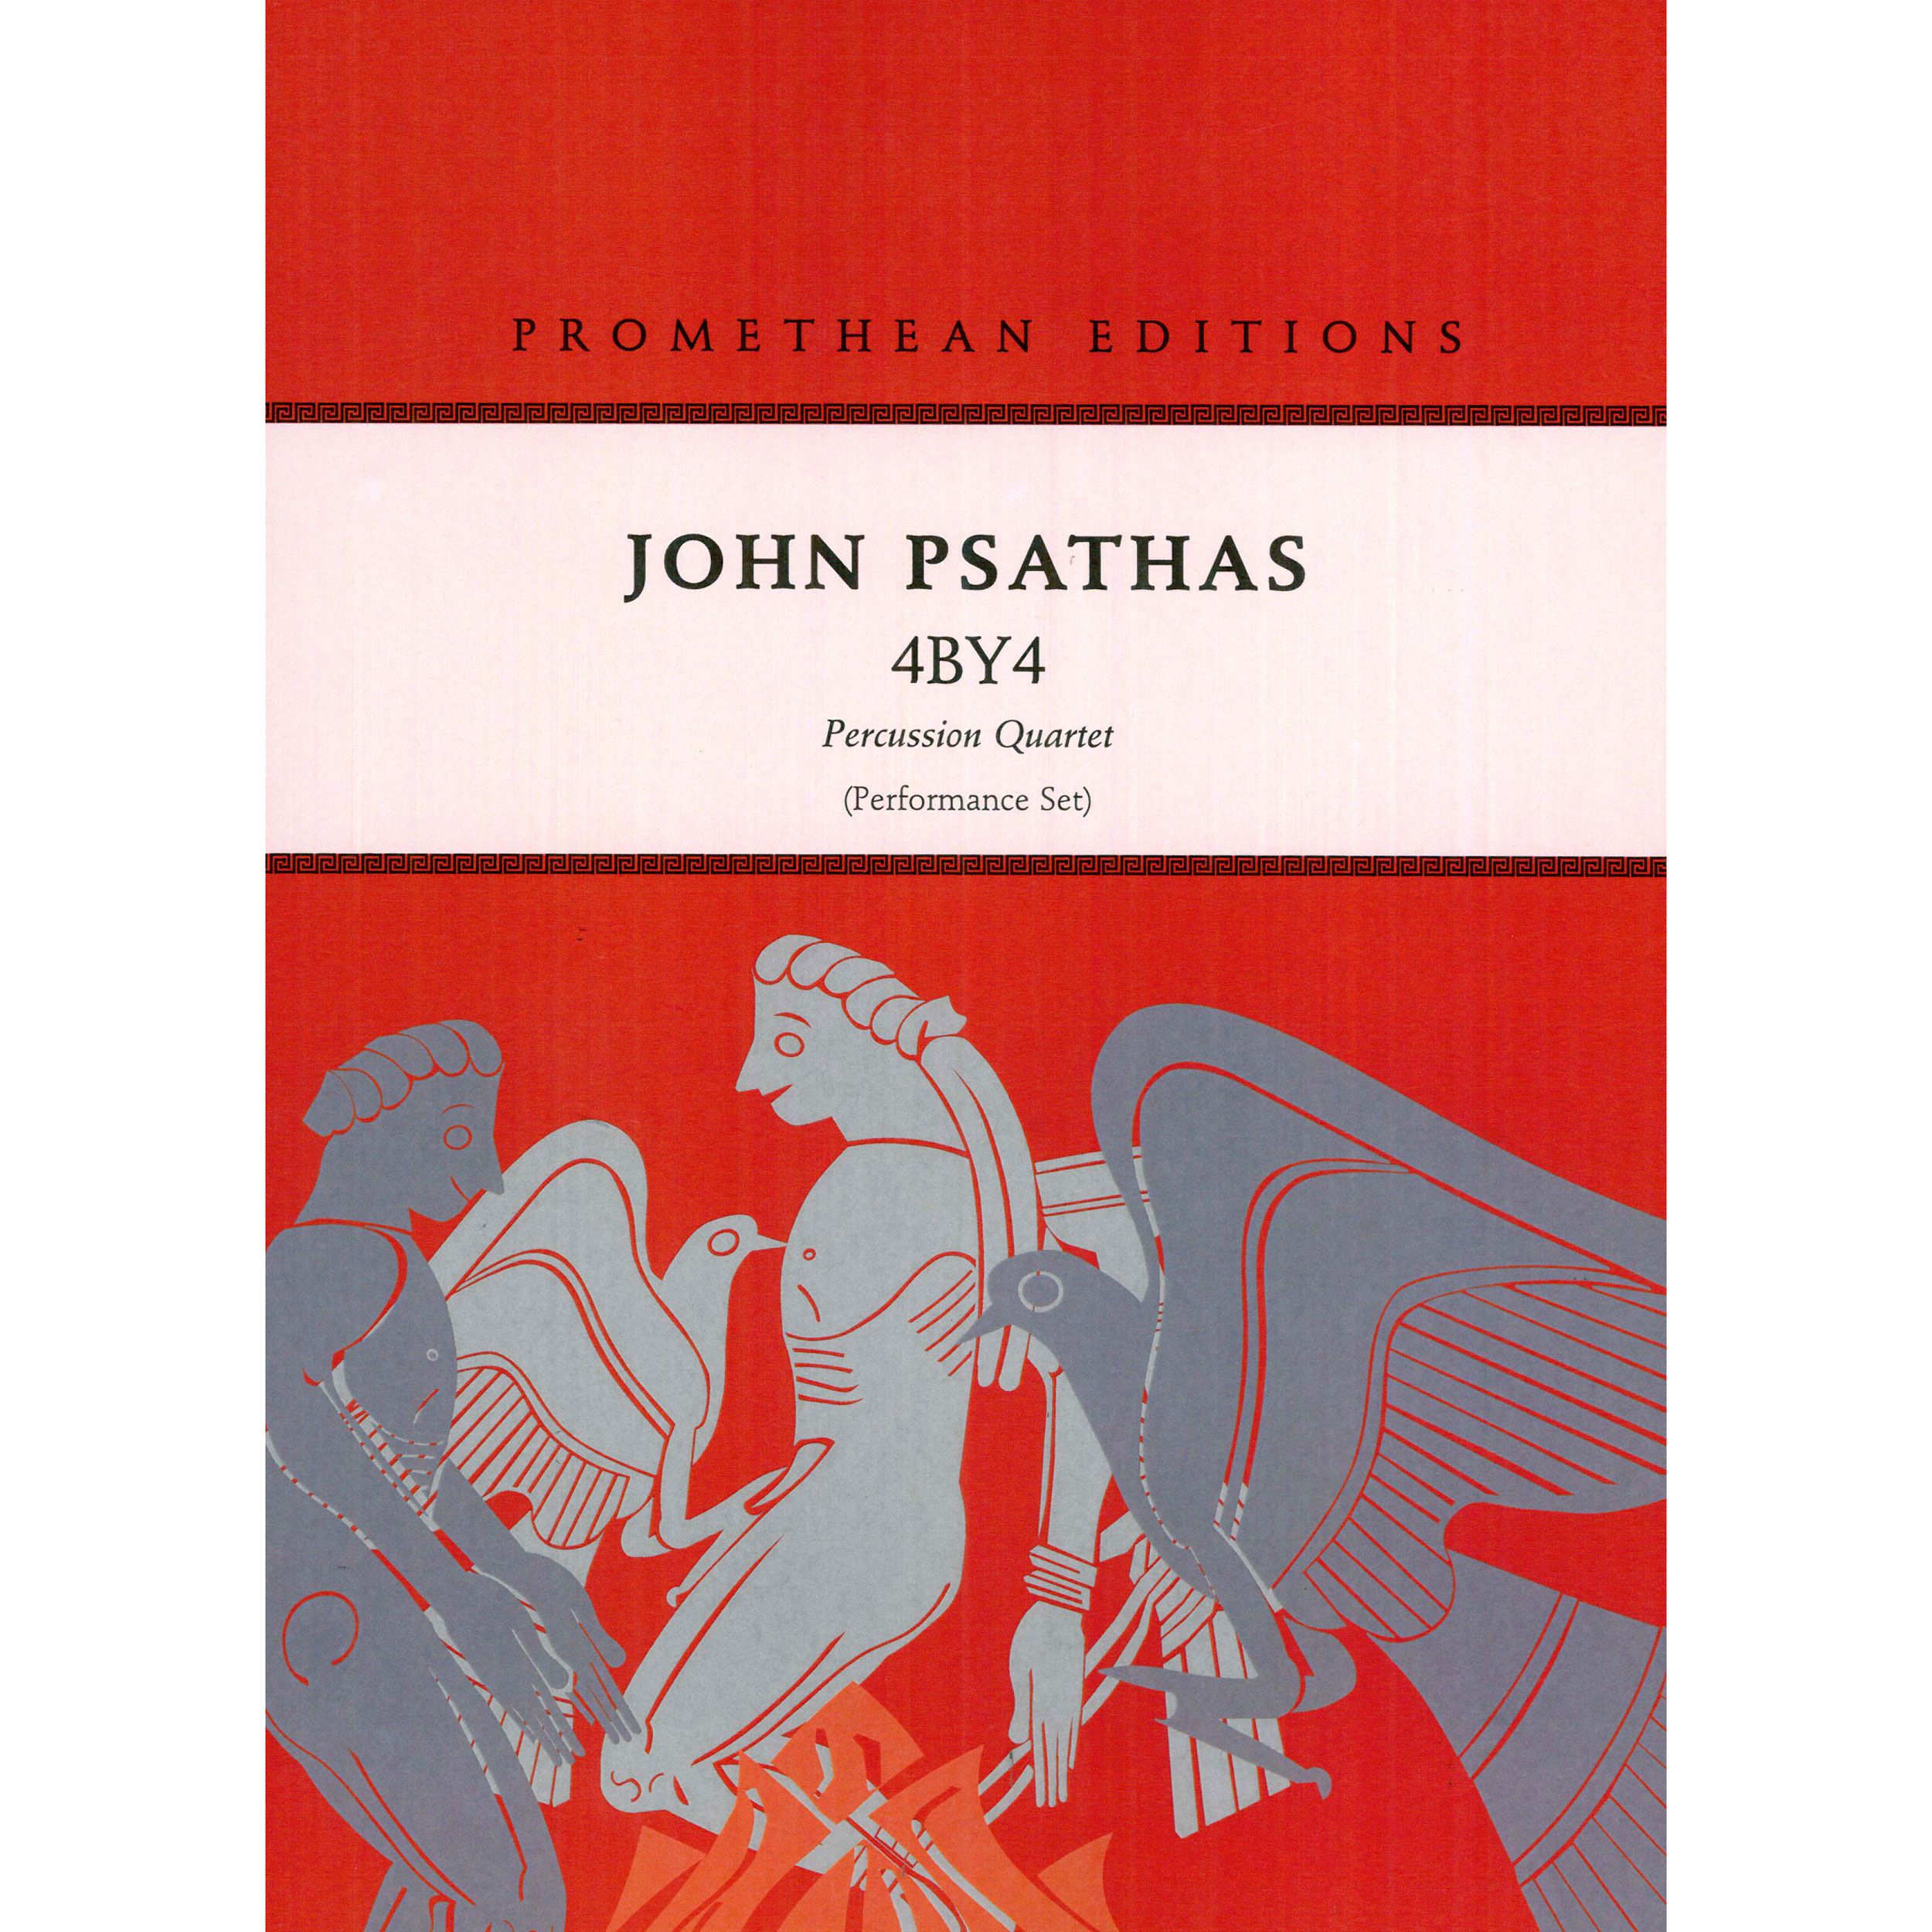 4BY4 by John Psathas (Parts)